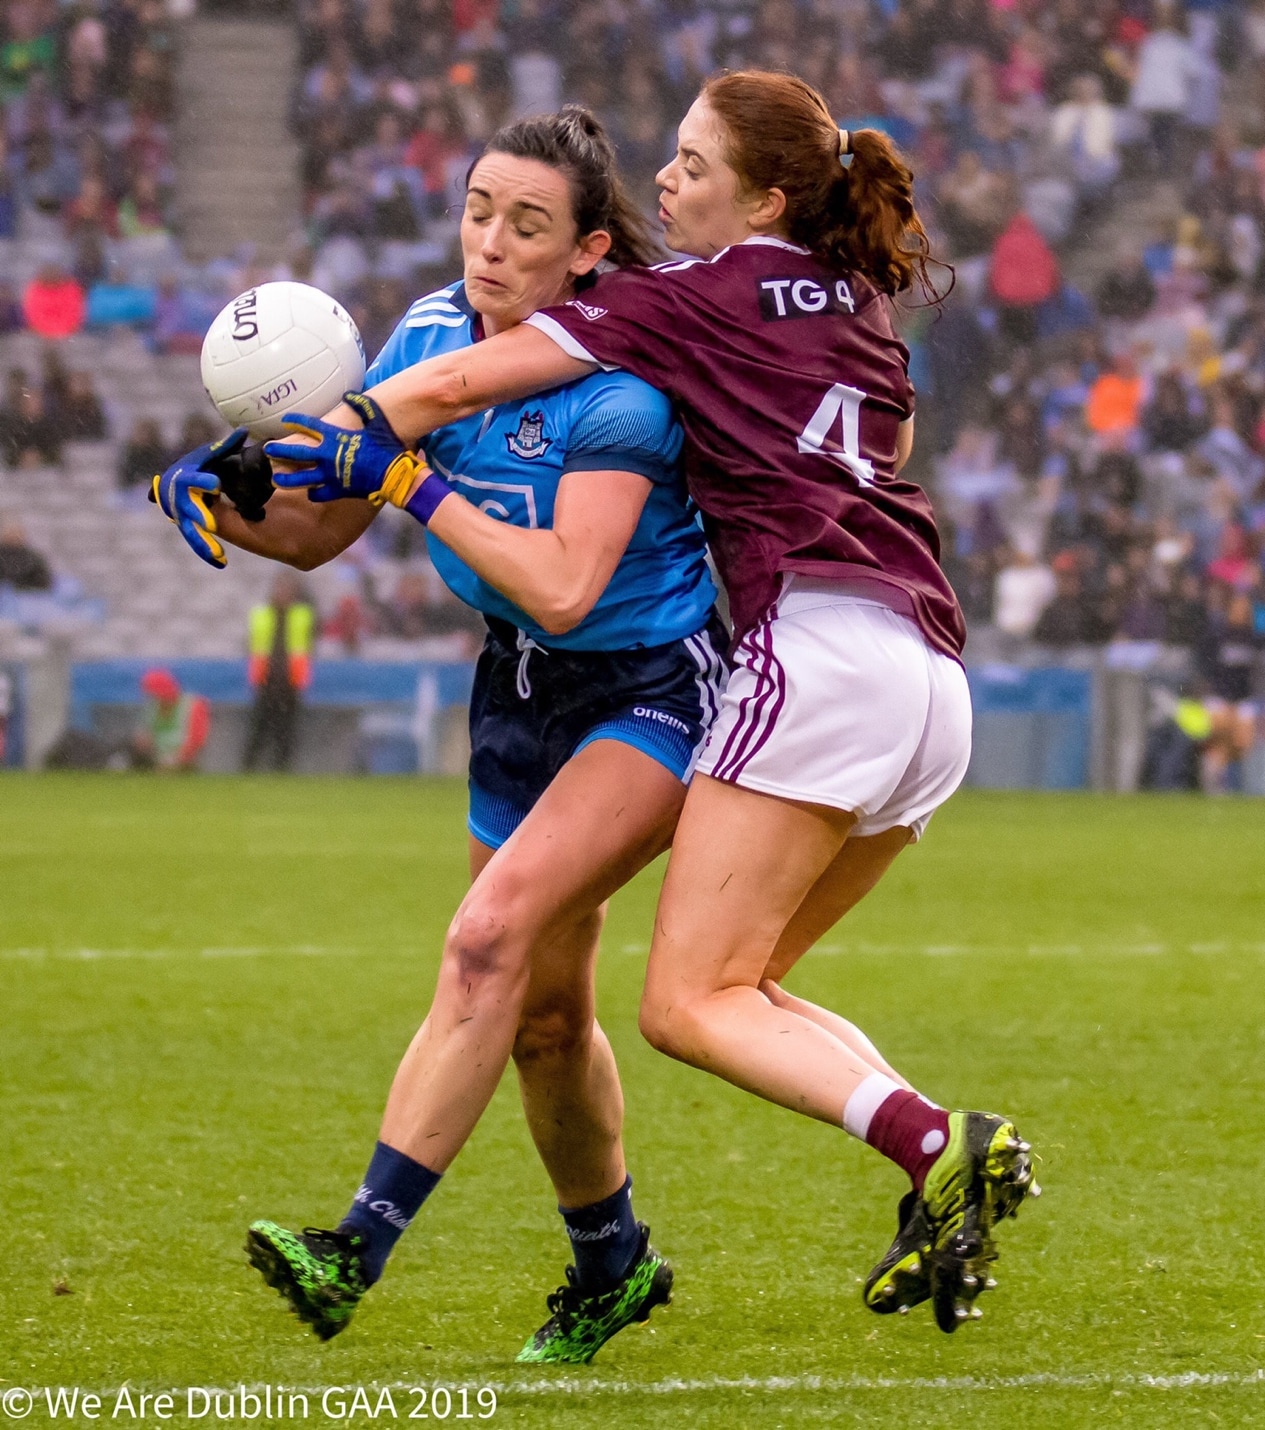 Dublin's Niamh McEvoy is tackled by a Galway defender during the 2019 All Ireland final, the format for the 2020 TG4 All Ireland championships have been ratified.